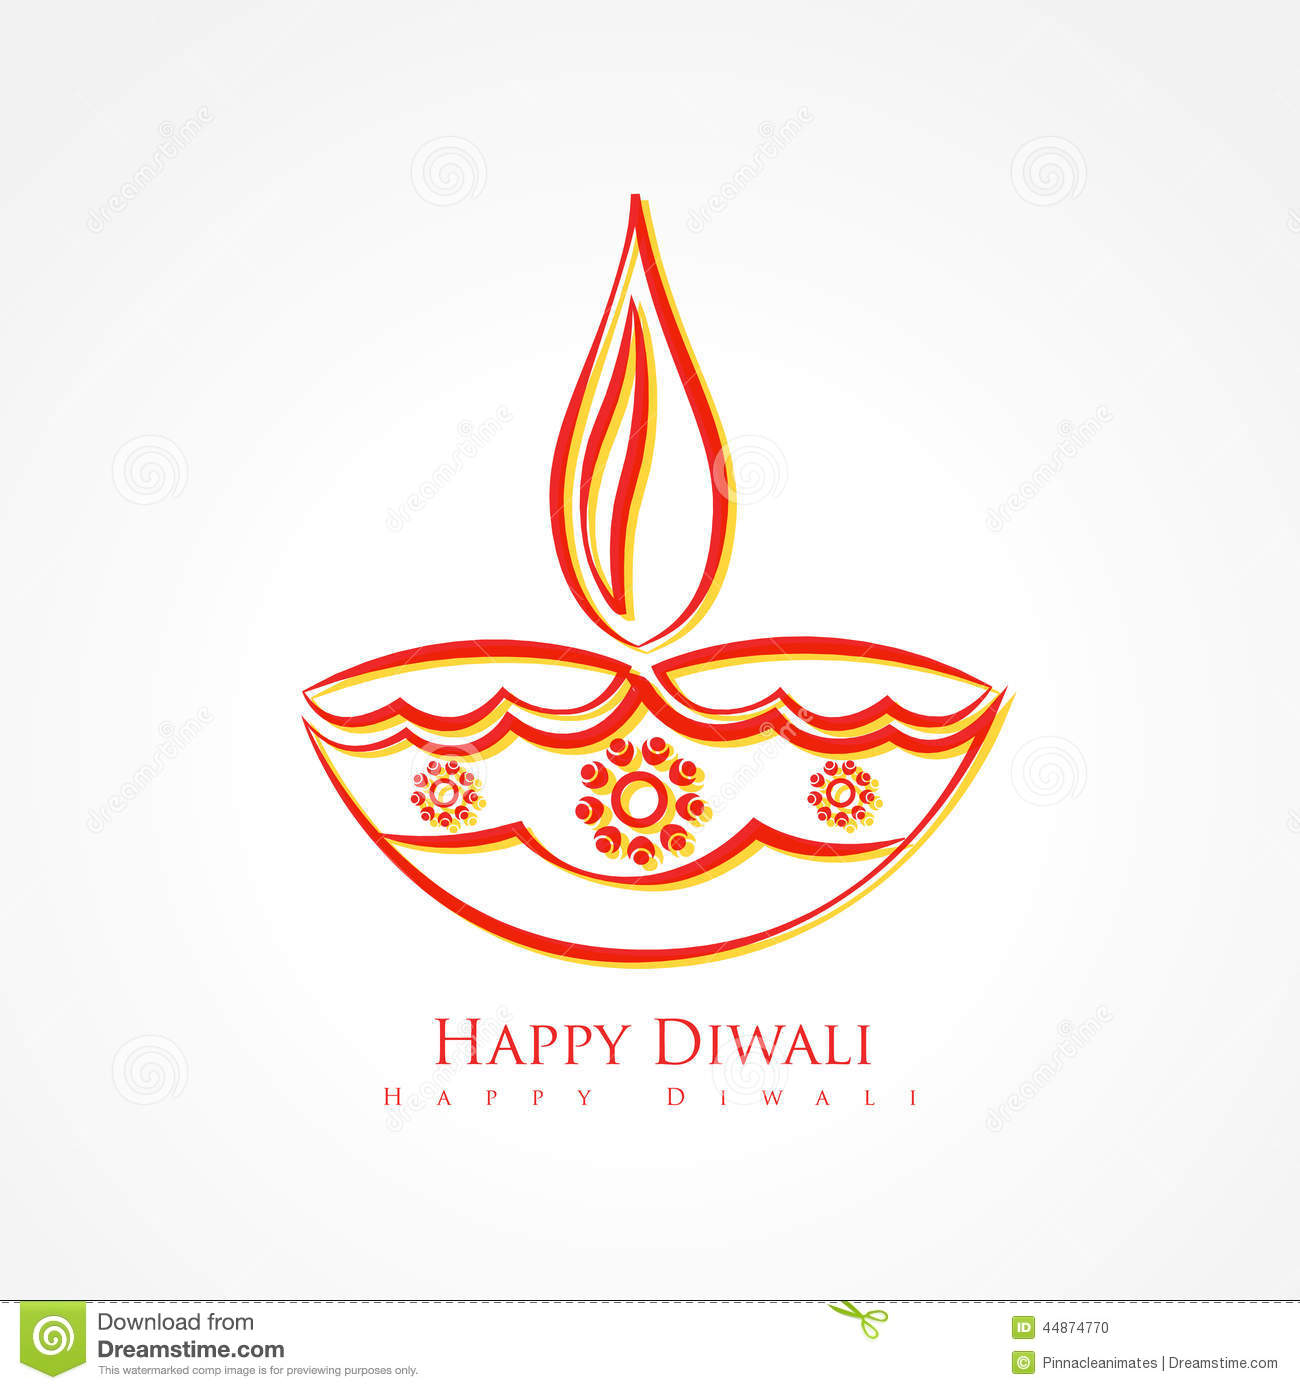 Artistic diwali diya isolated on white background stock vector artistic diwali diya isolated on white background m4hsunfo